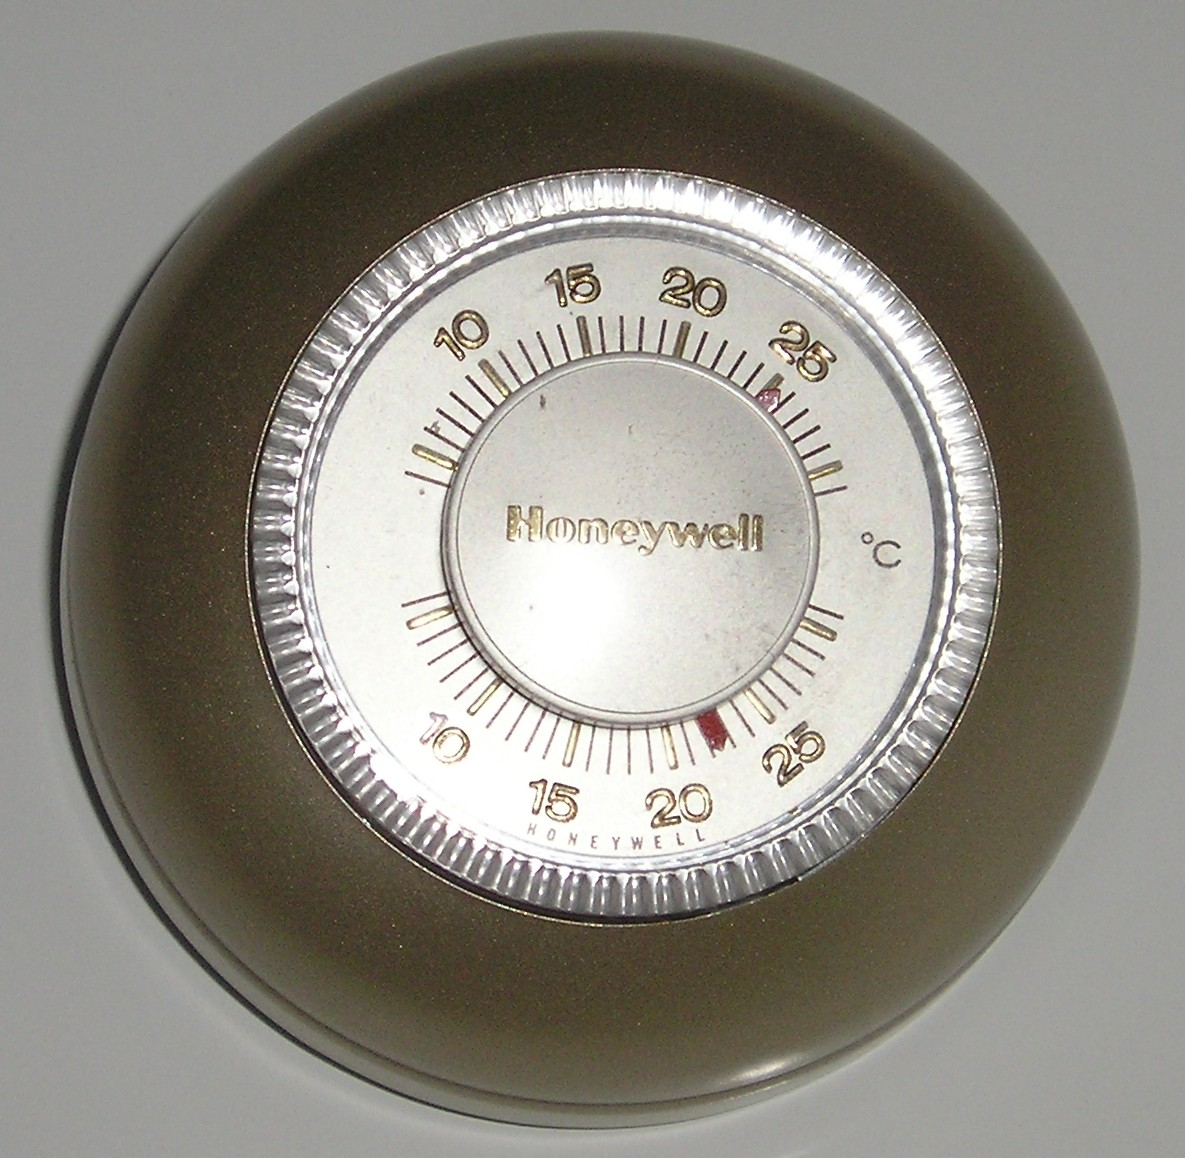 Honeywell Round Thermostat Manual Basic Instruction Diagram Wiring Trusted Diagrams Elegant Image Rh Mainetreasurechest Com Instructions